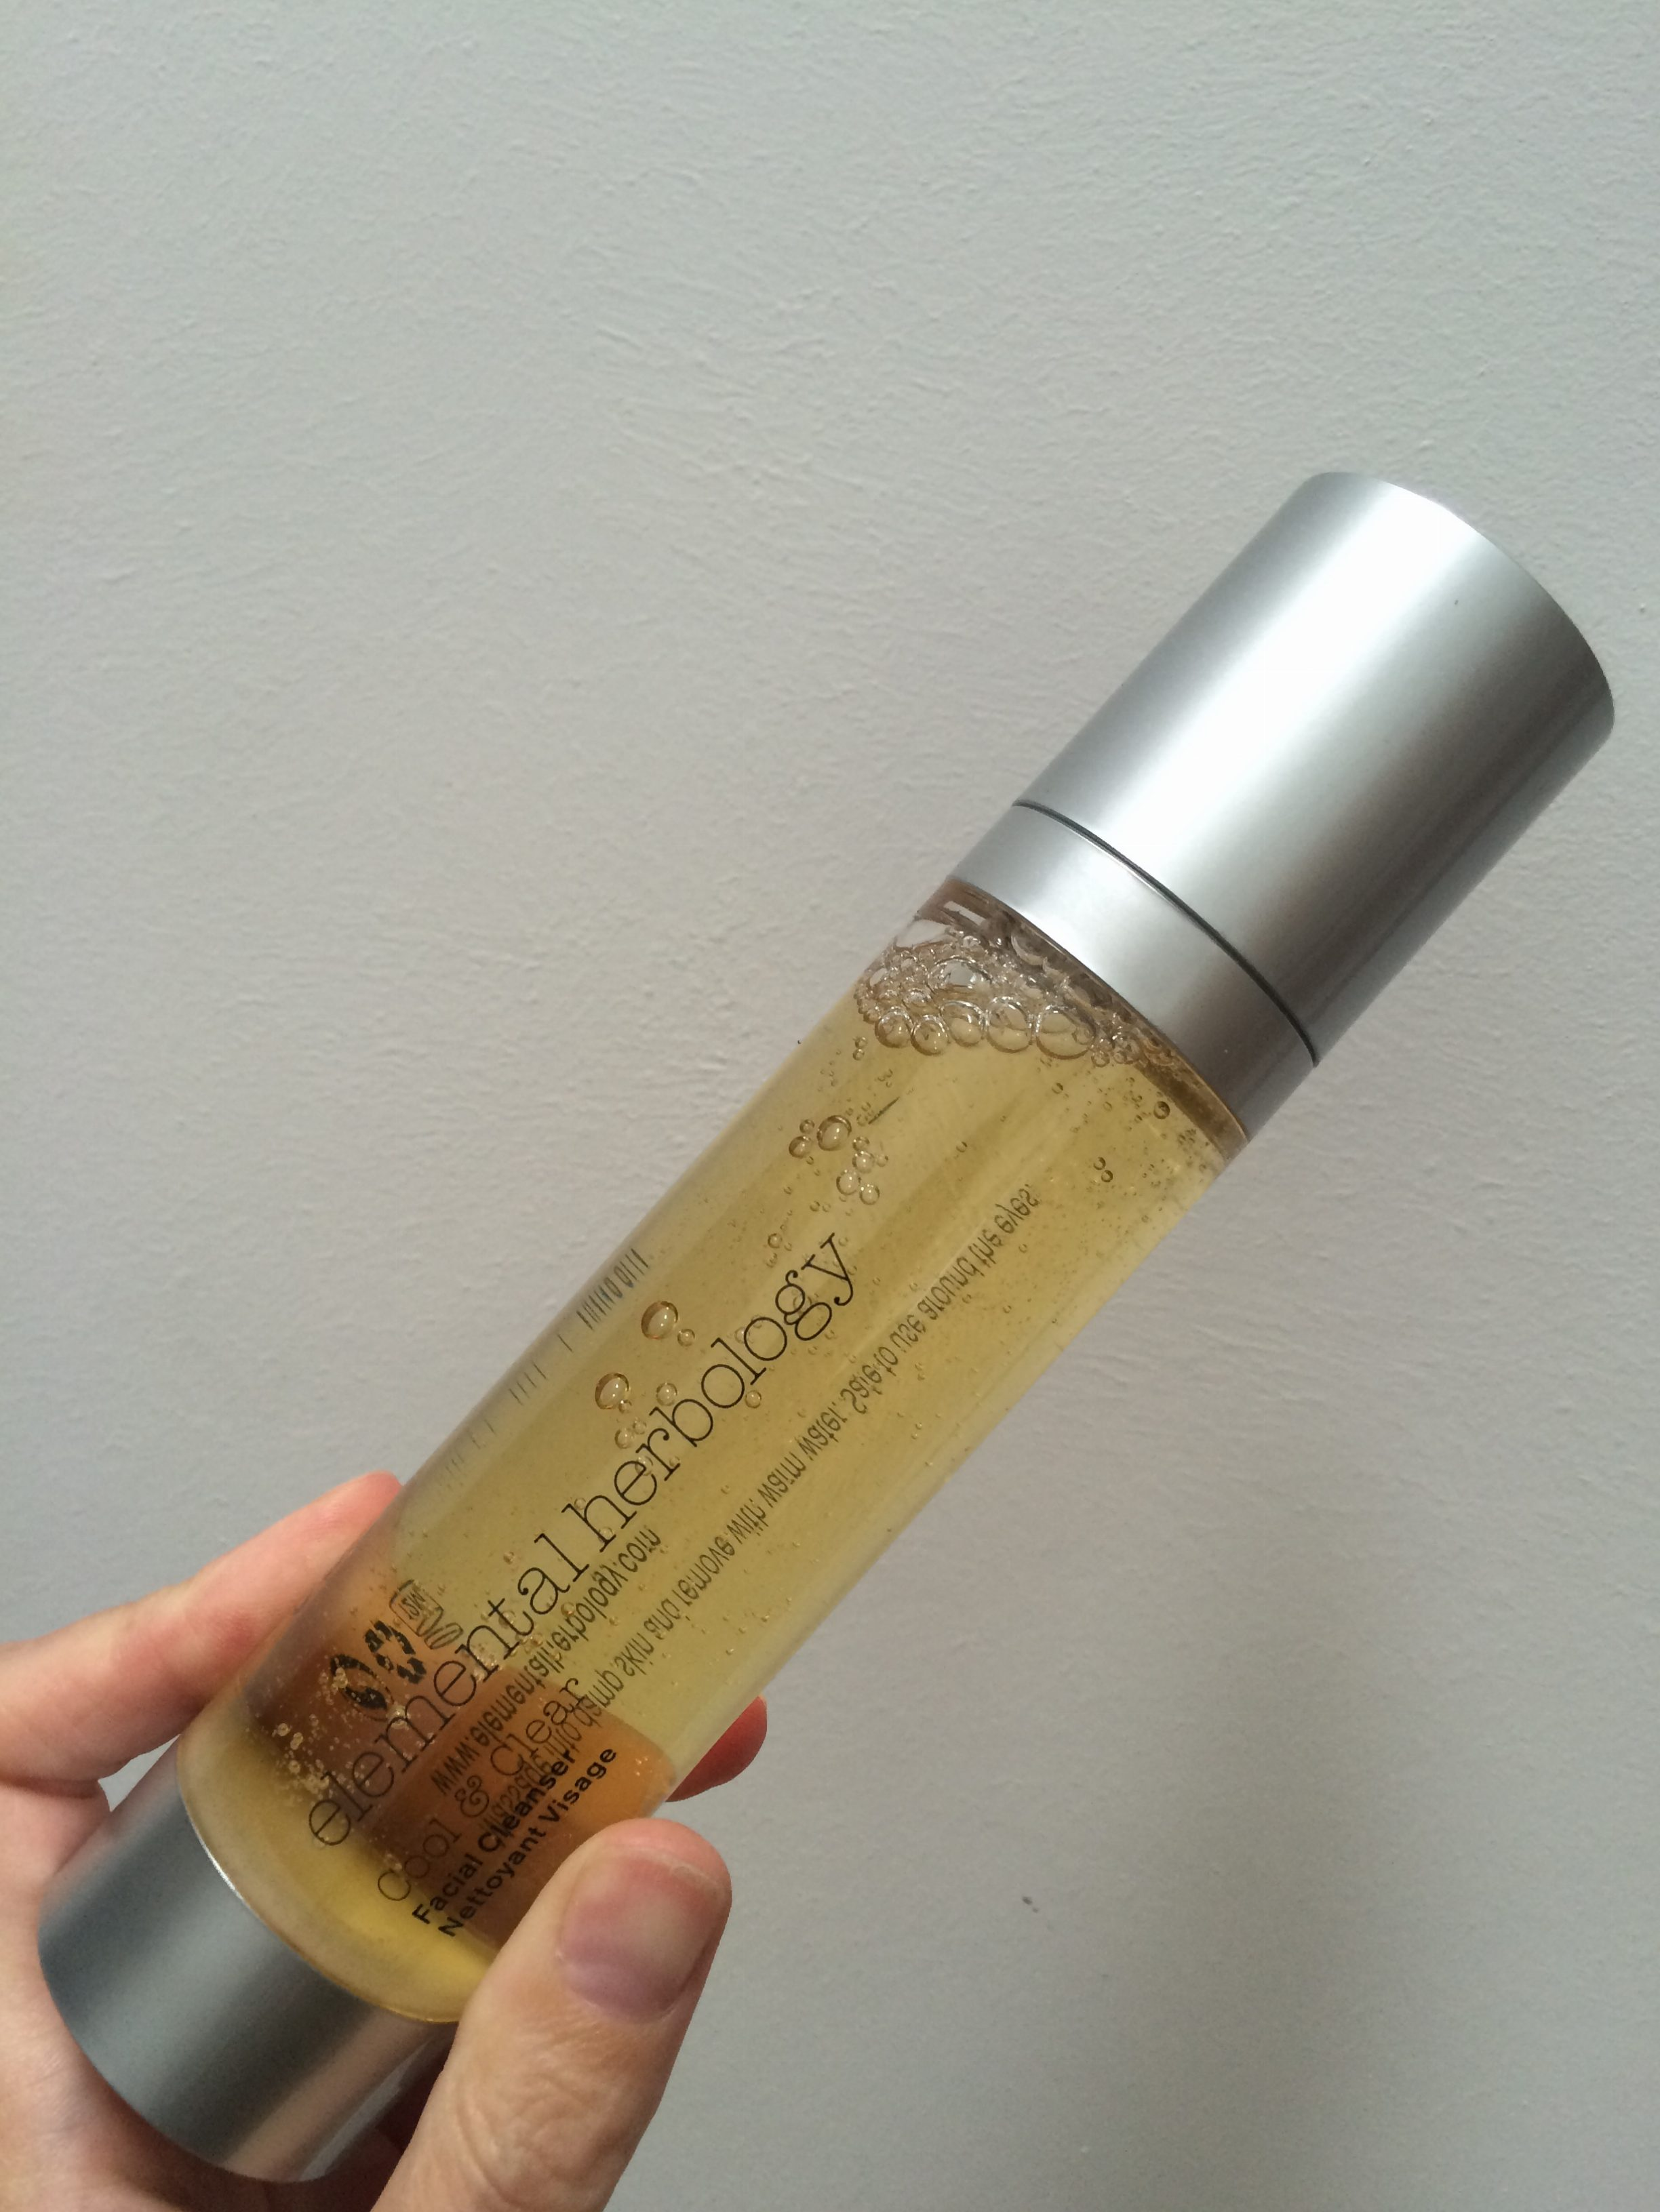 Elemental Herbology Oil Control Collection cool and clear facial wash